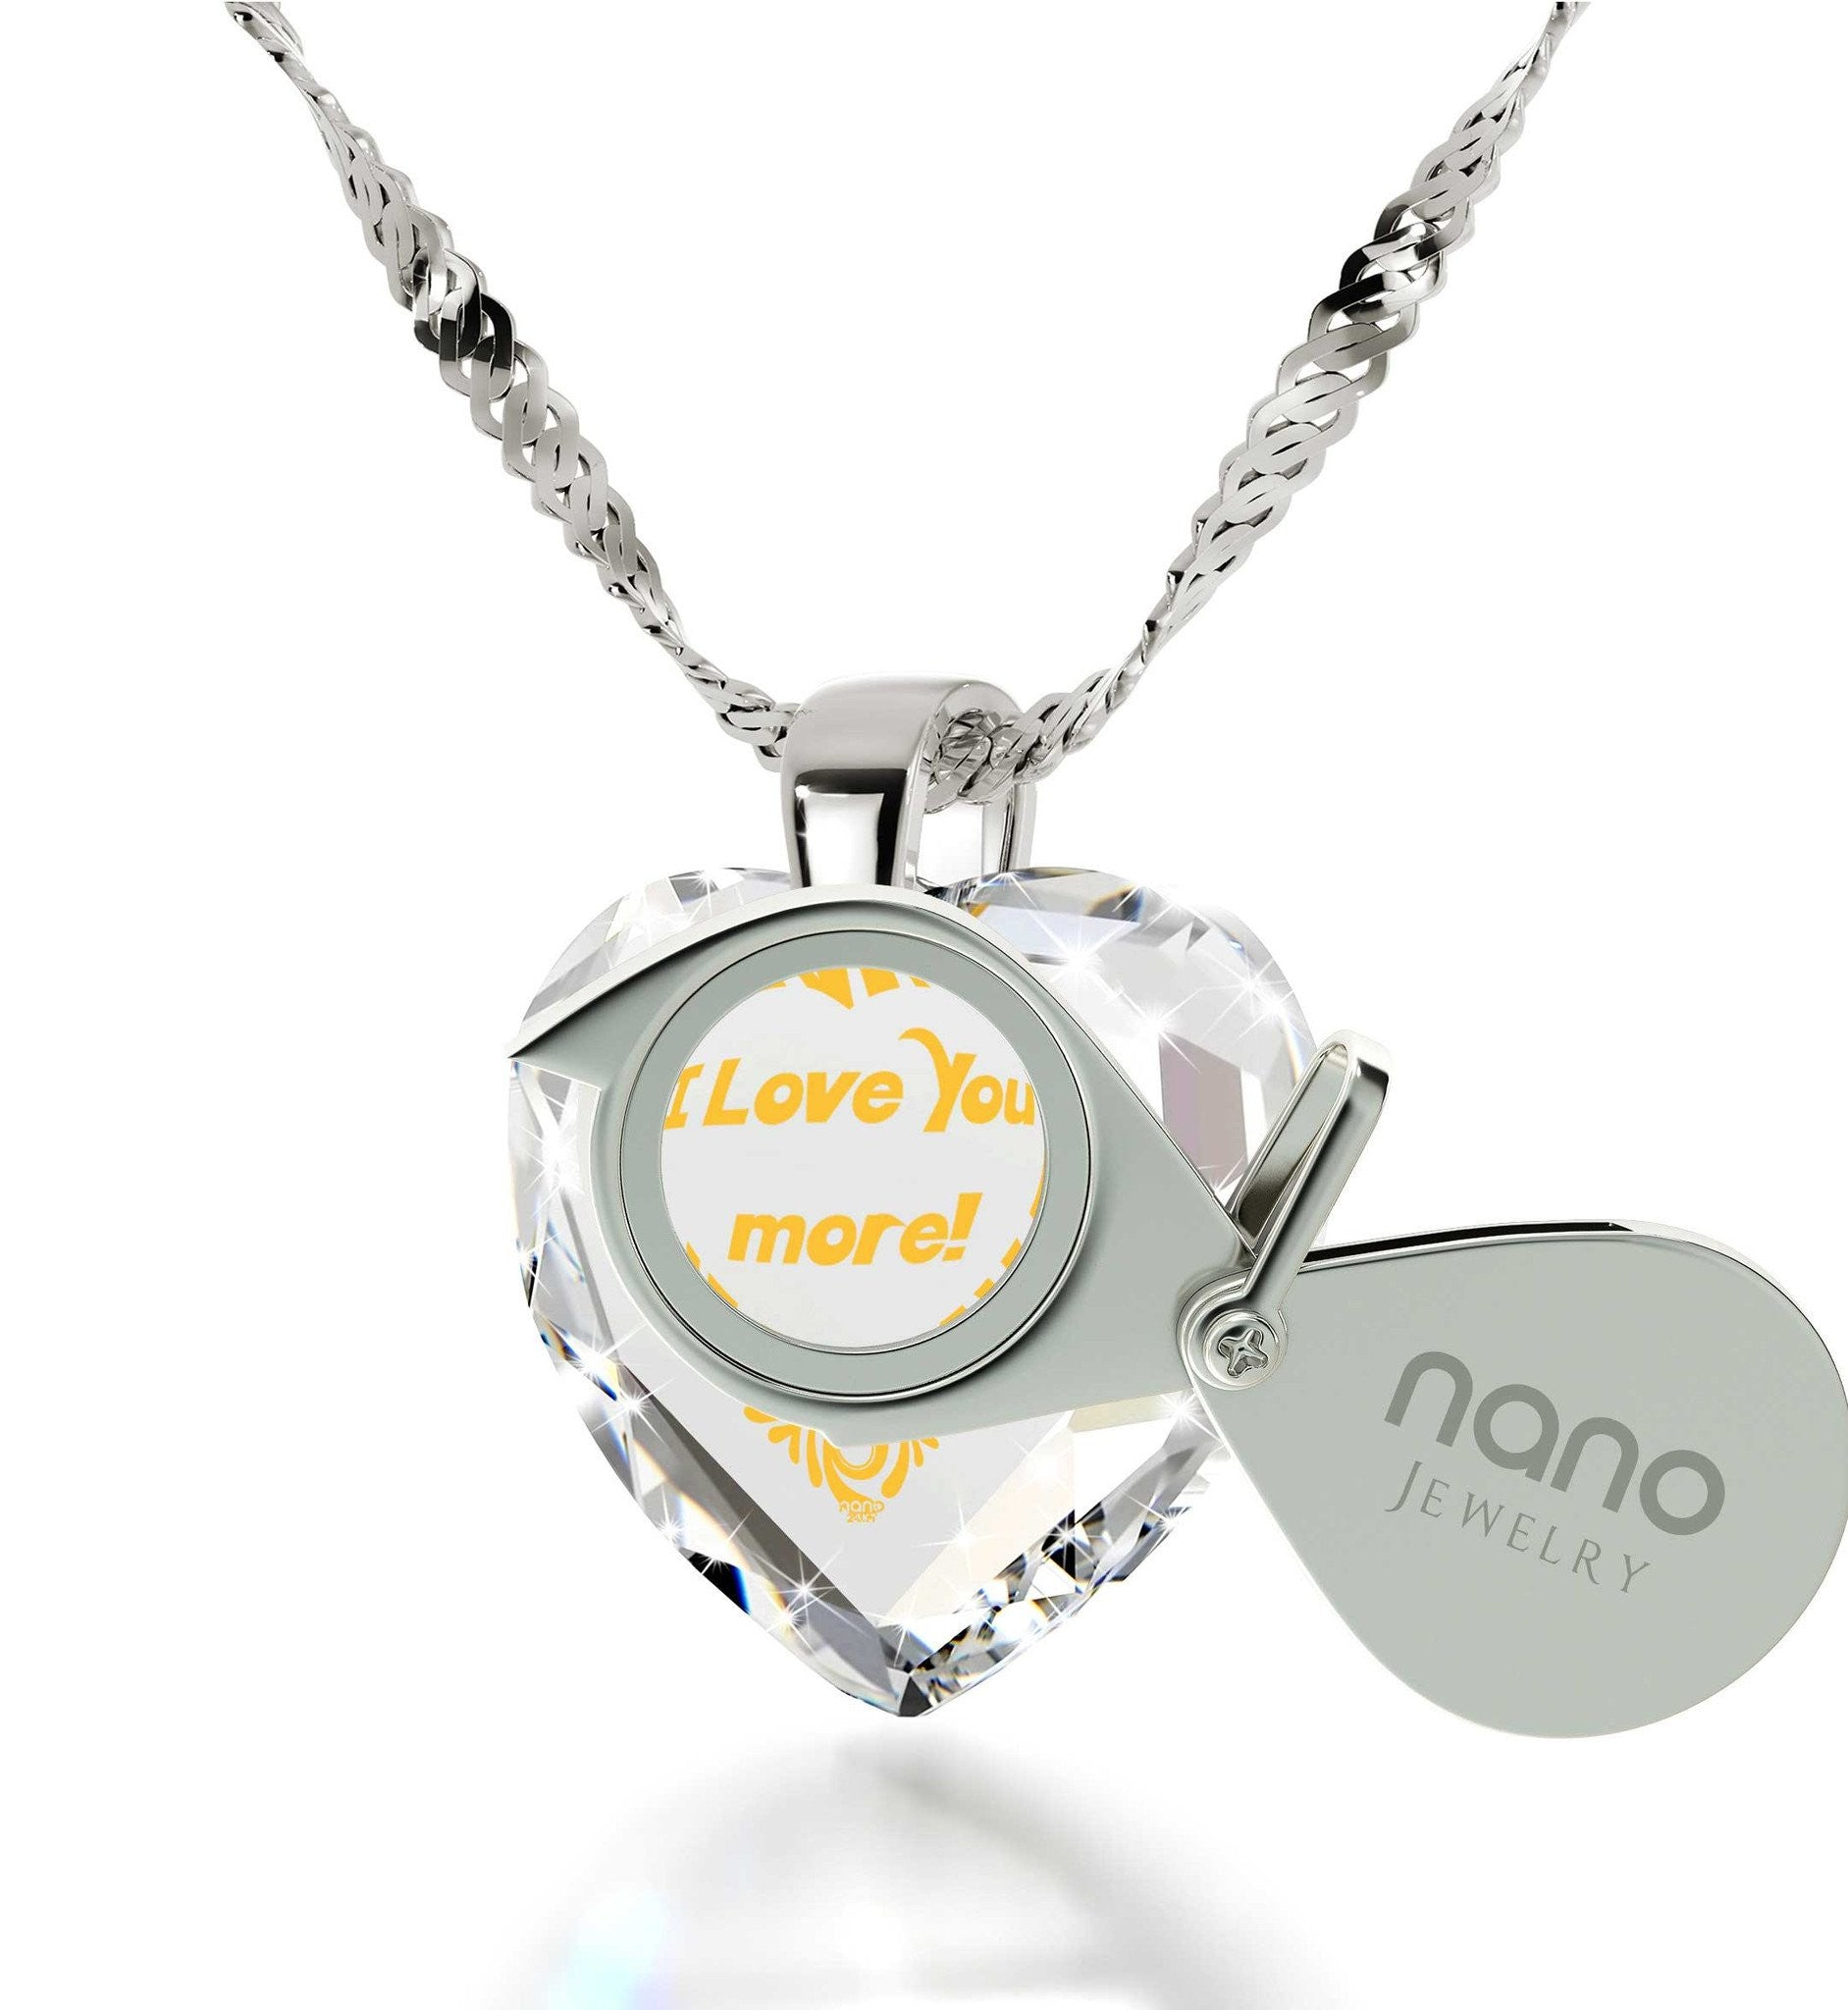 """Womens Christmas Ideas,""I Love You More"" Necklace, Birthday Present for Girlfriend, Nano Jewelry"""